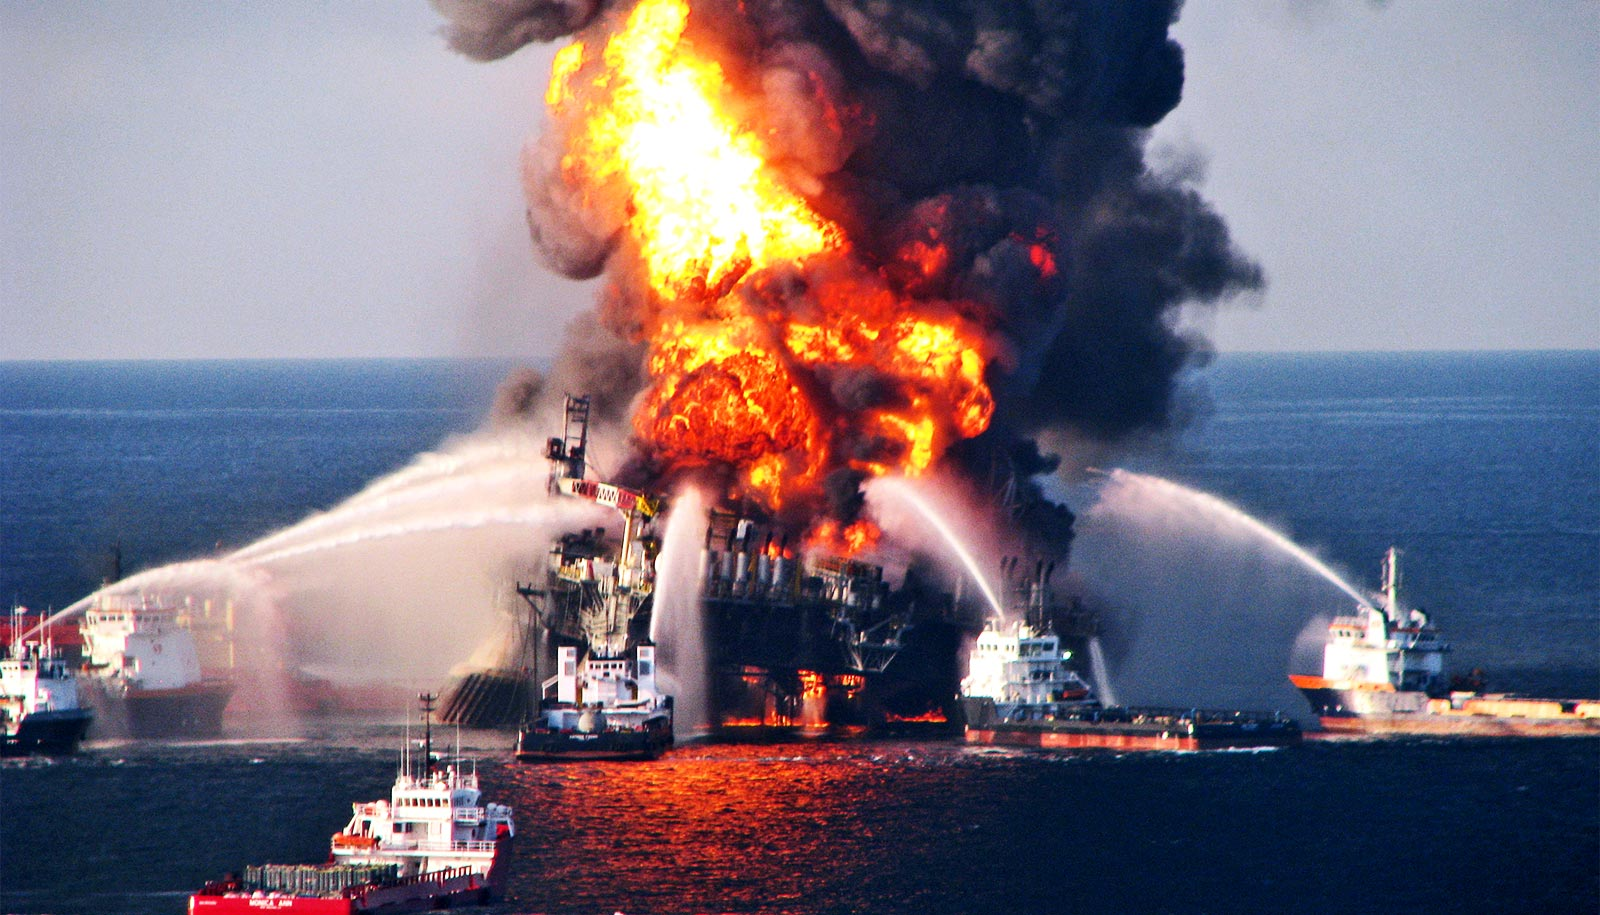 Geology drove decisions that led to Deepwater Horizon explosion